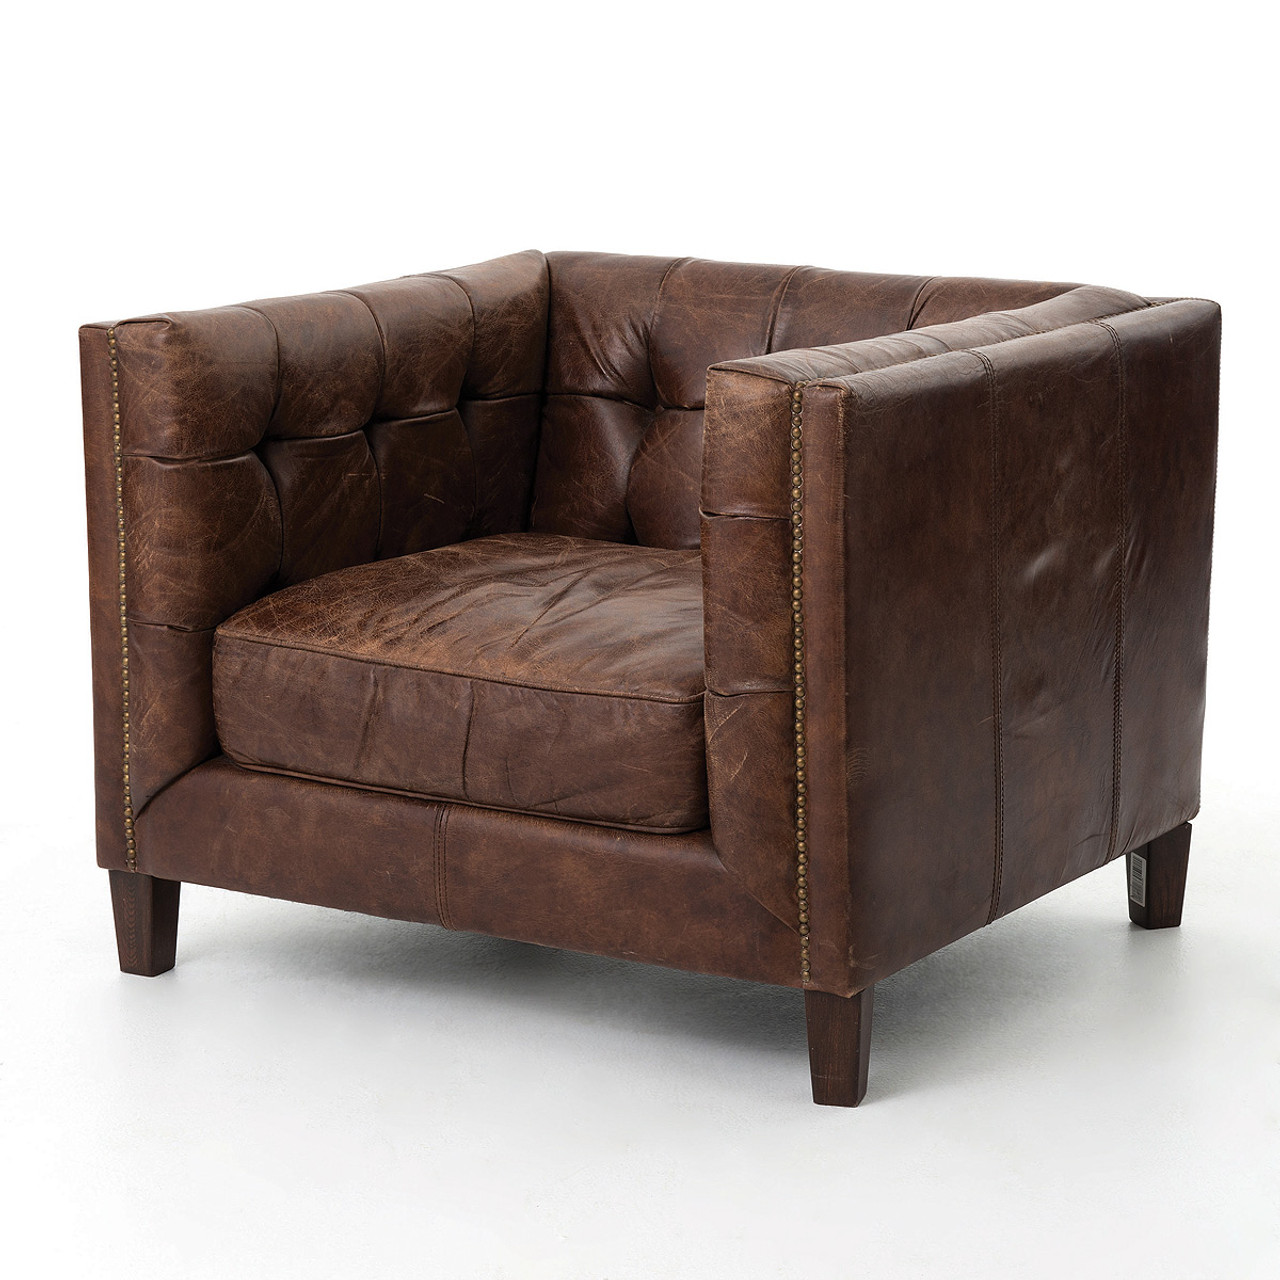 club furniture gilbert rohde chair seating leather armchairs listings